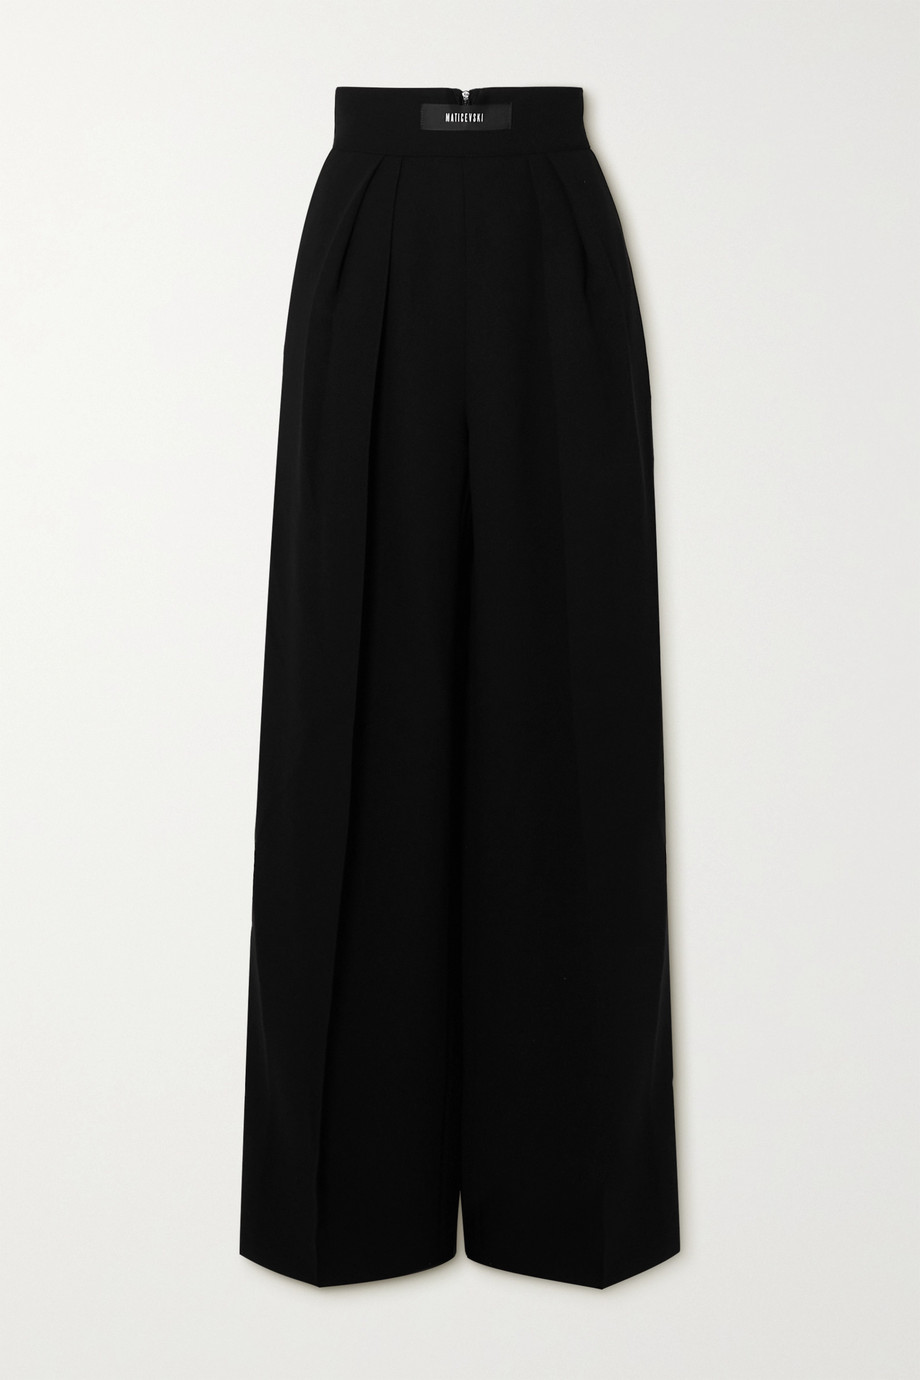 MATICEVSKI Reason crepe wide-leg pants